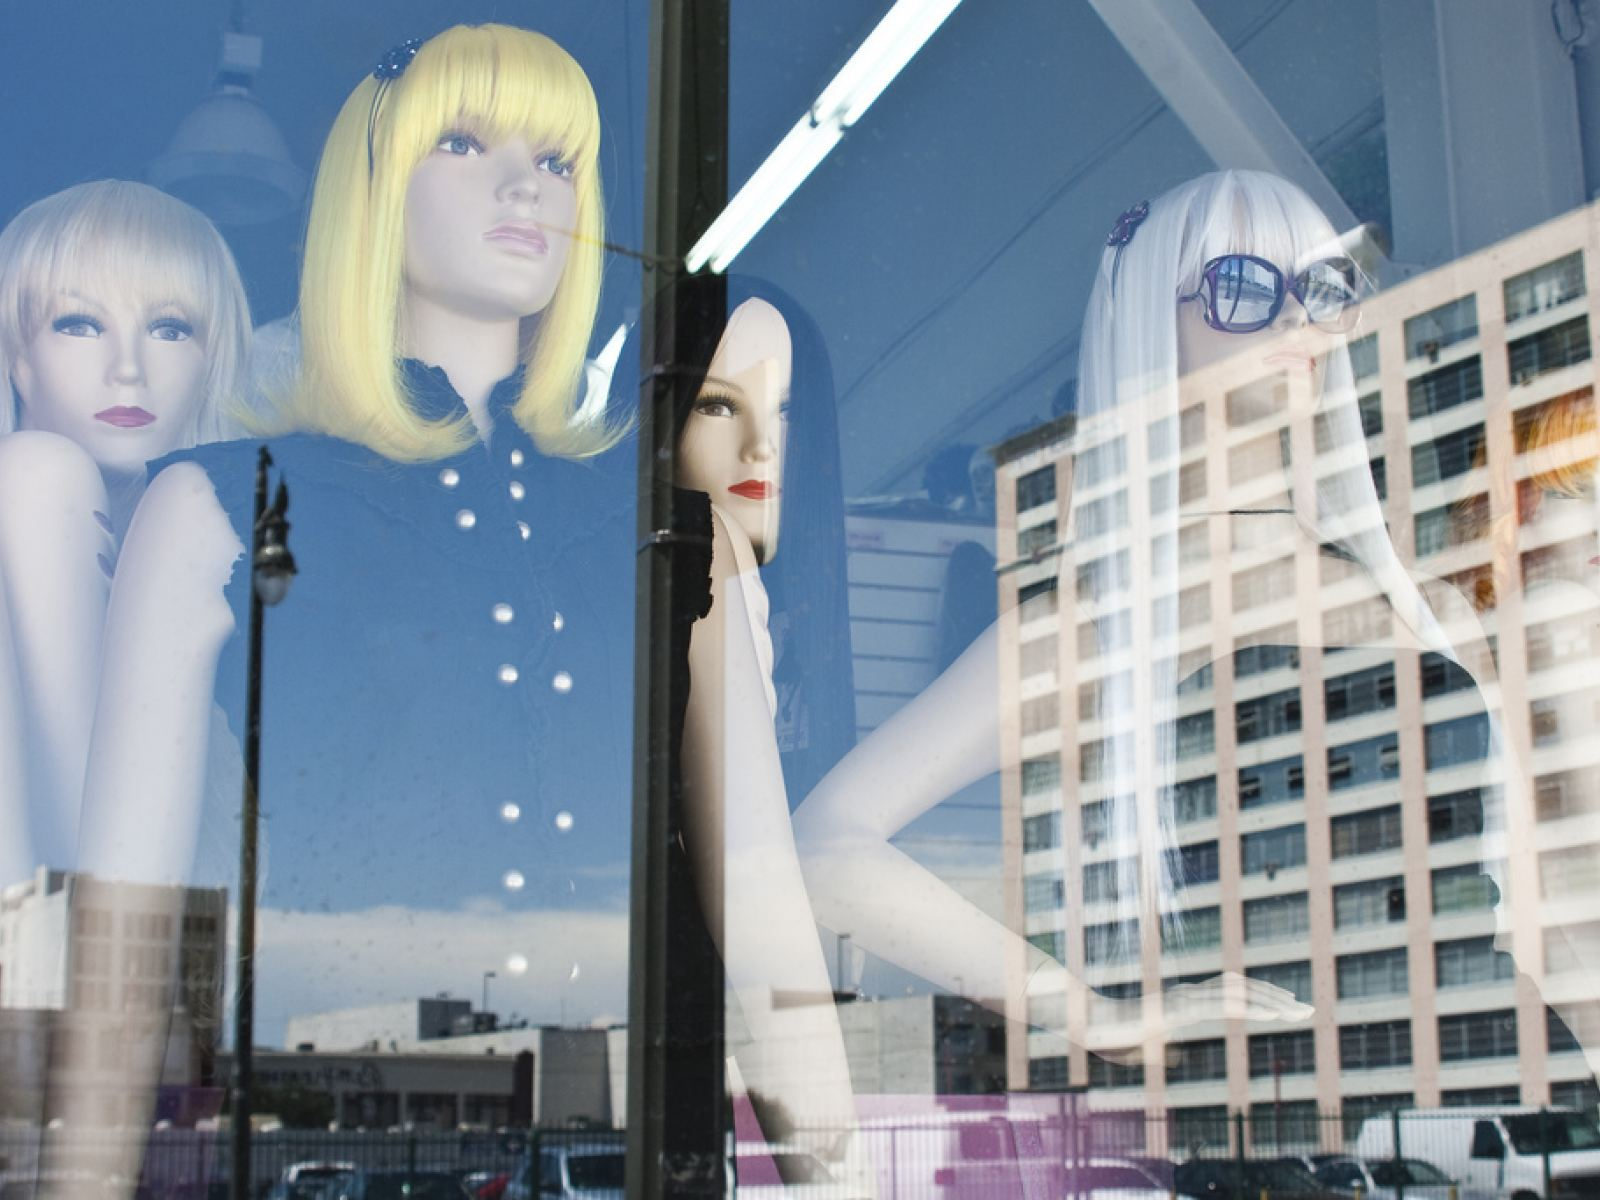 Main image for article titled Compras em Los Angeles: Robertson Boulevard